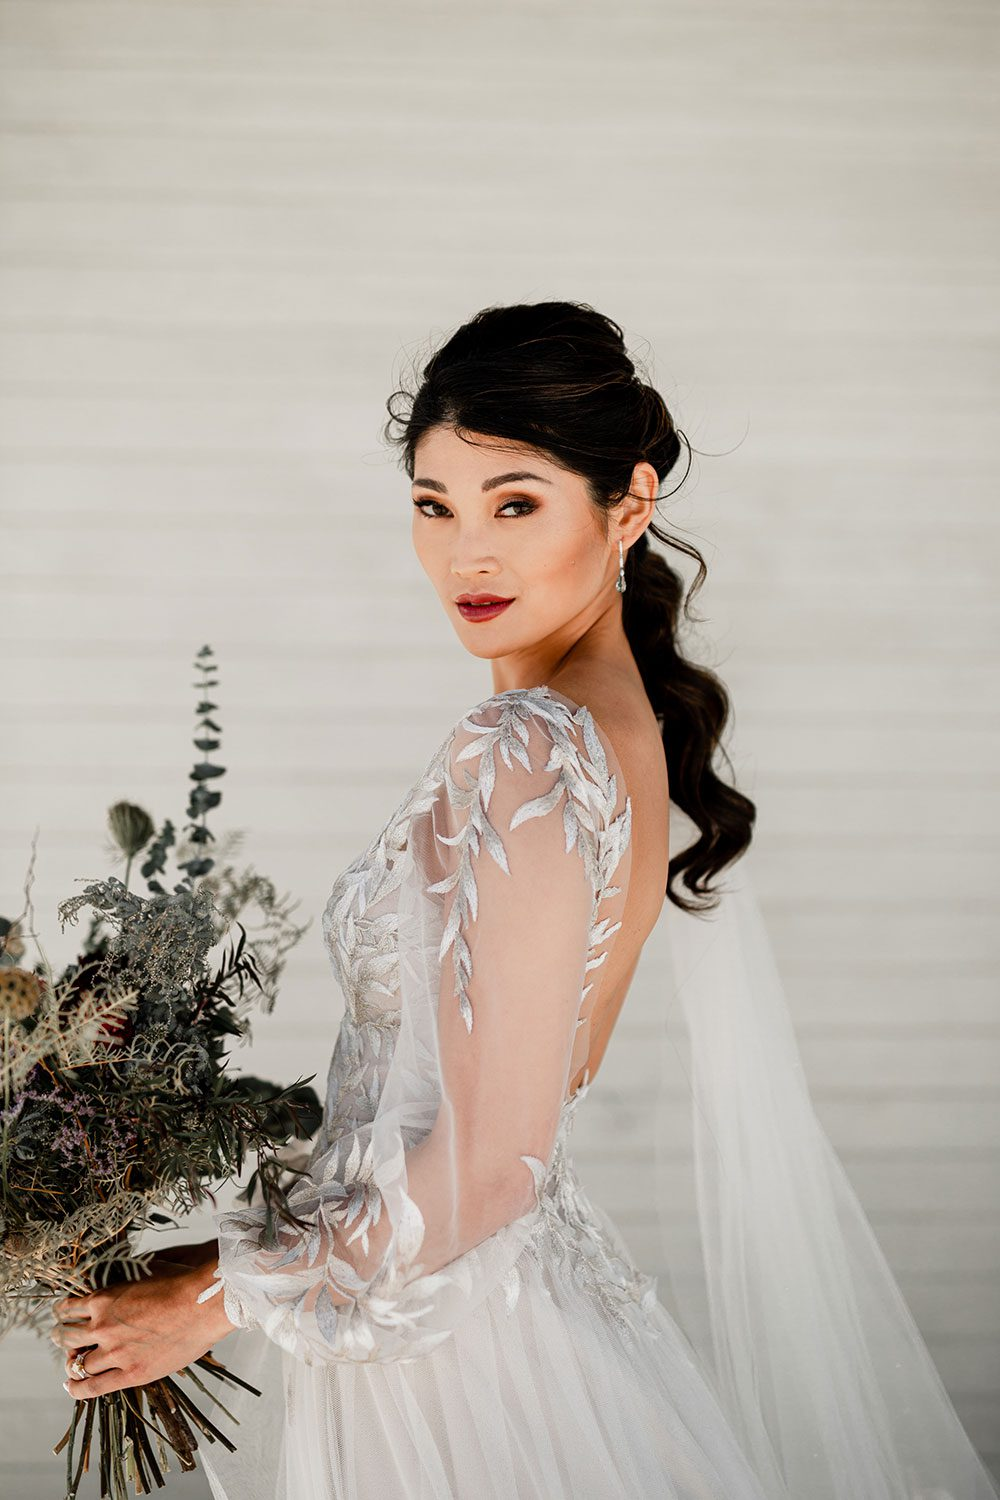 Bride wearing bespoke designer wedding dress by Vinka Bridal Boutique NZ, adorned with delicate applique lace and puffed sleeves - side holding bouquet